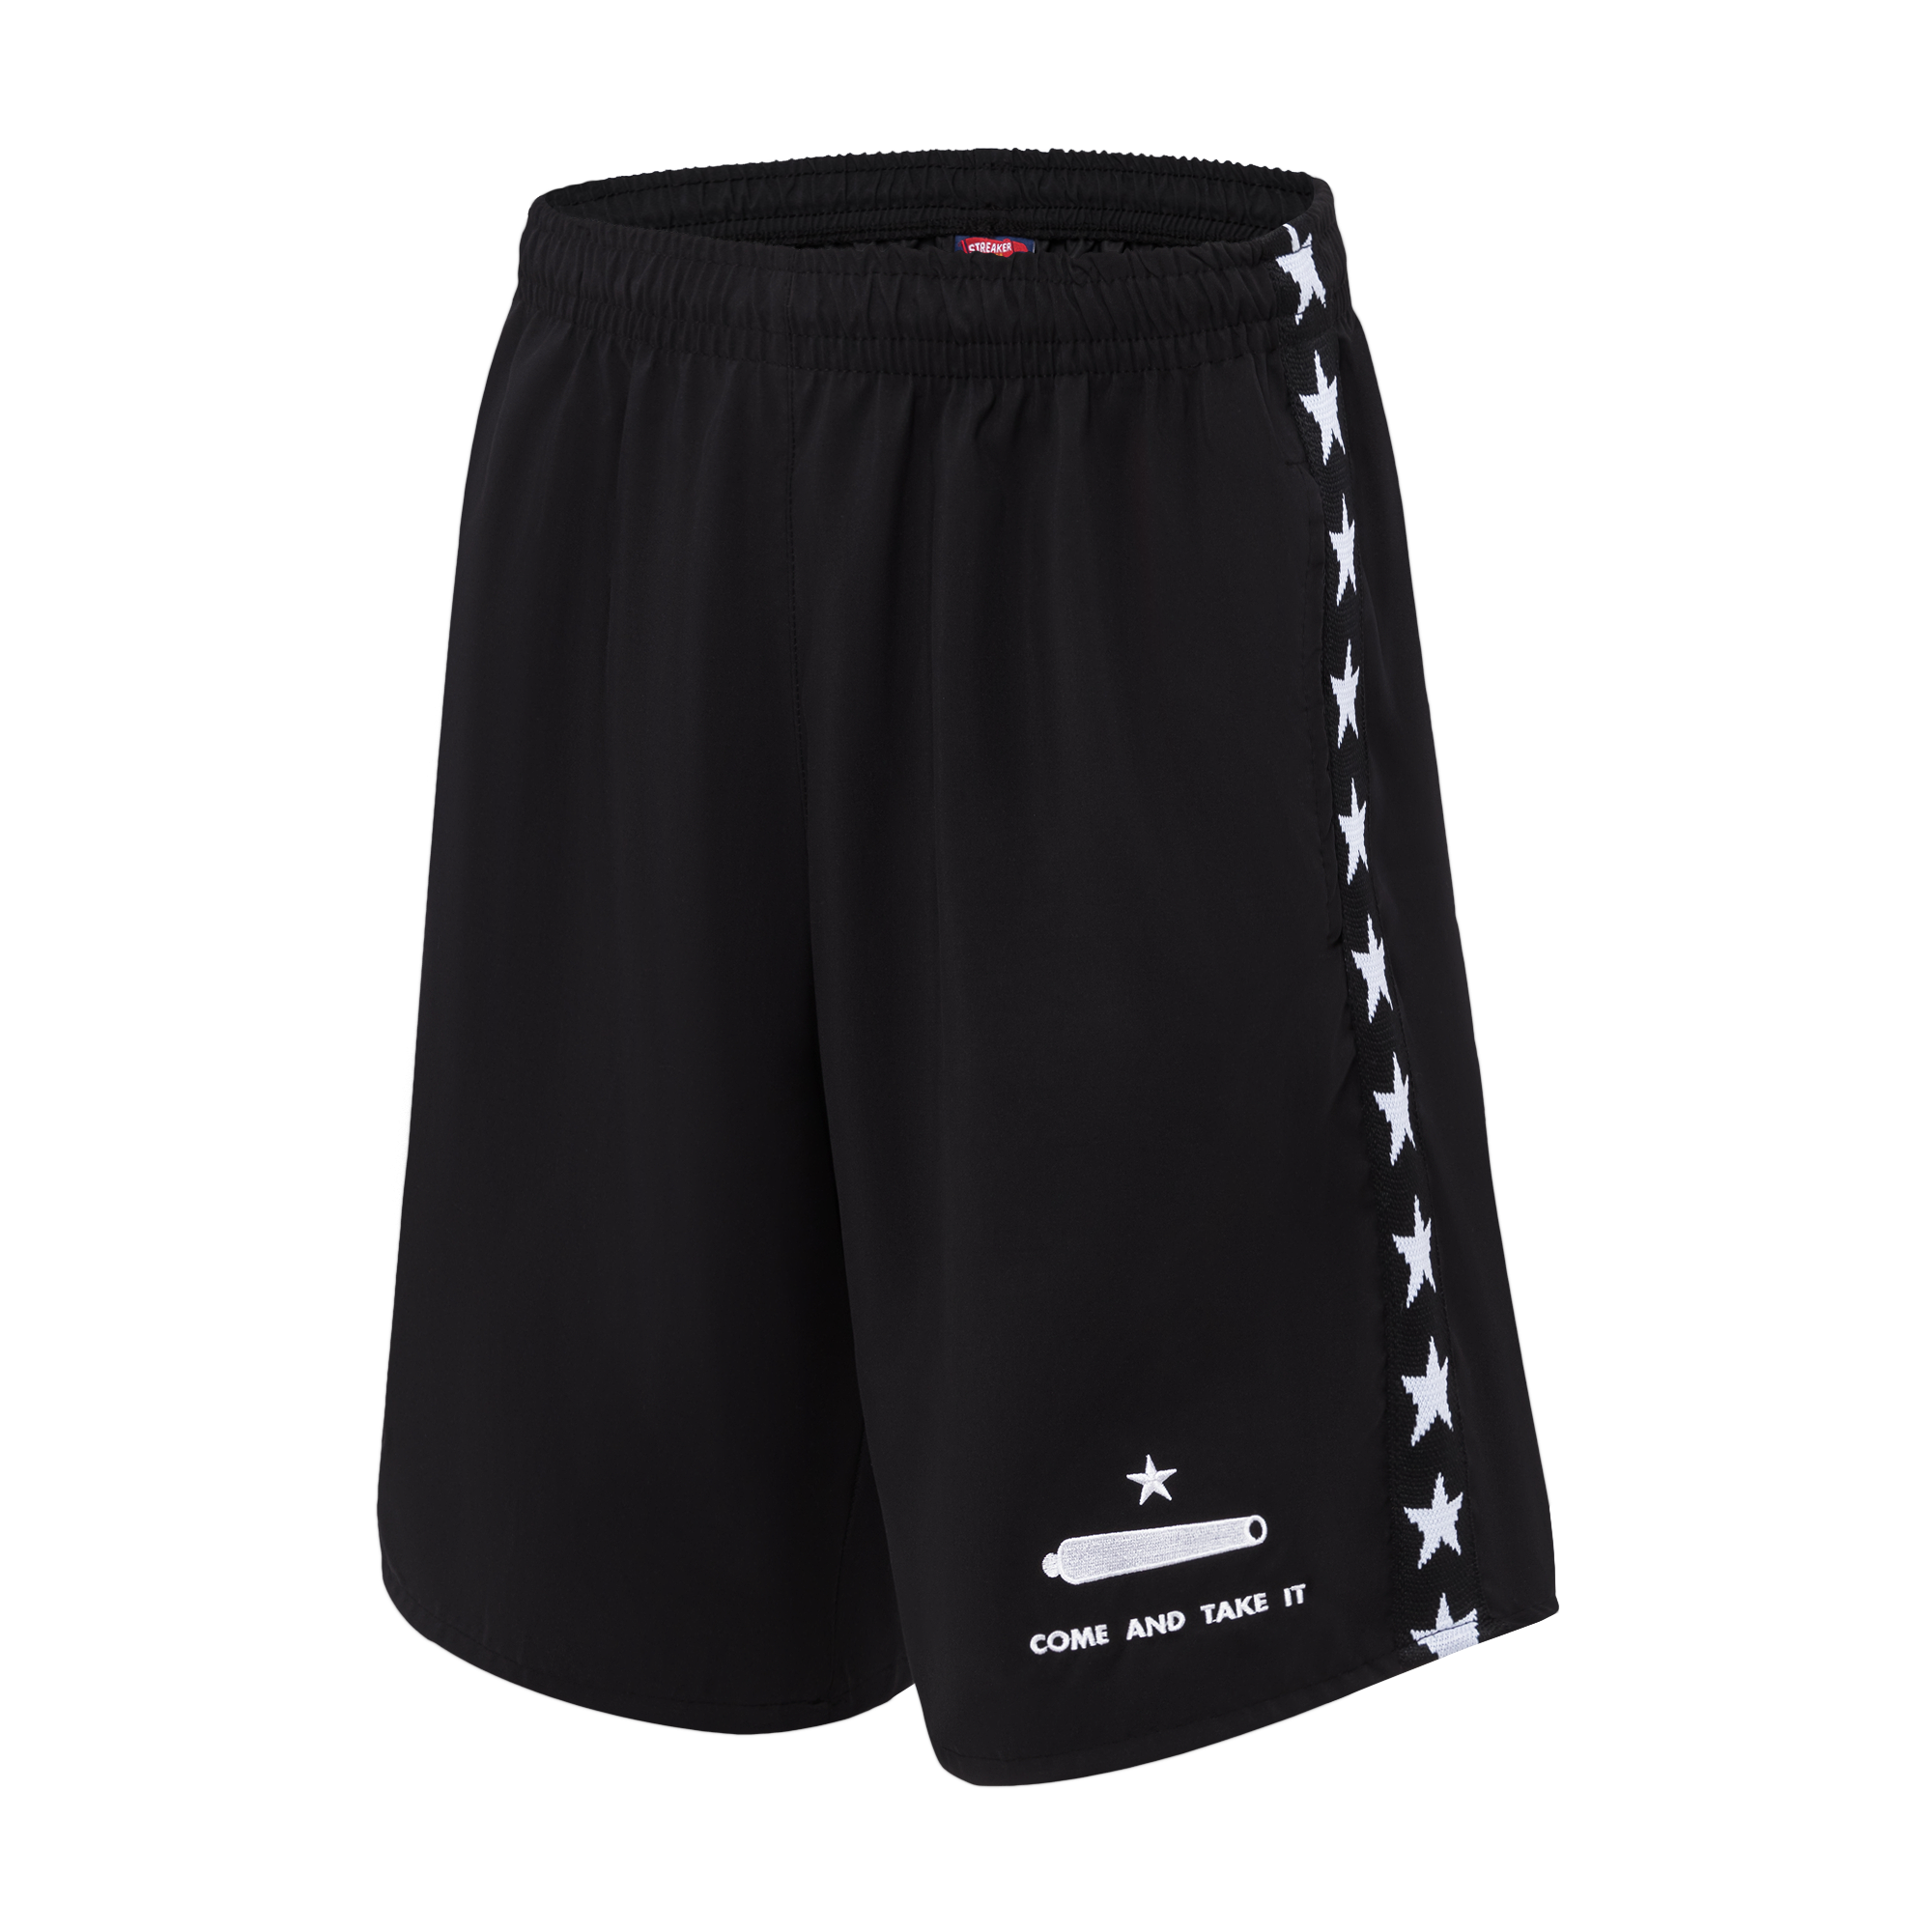 black Shorts product photo